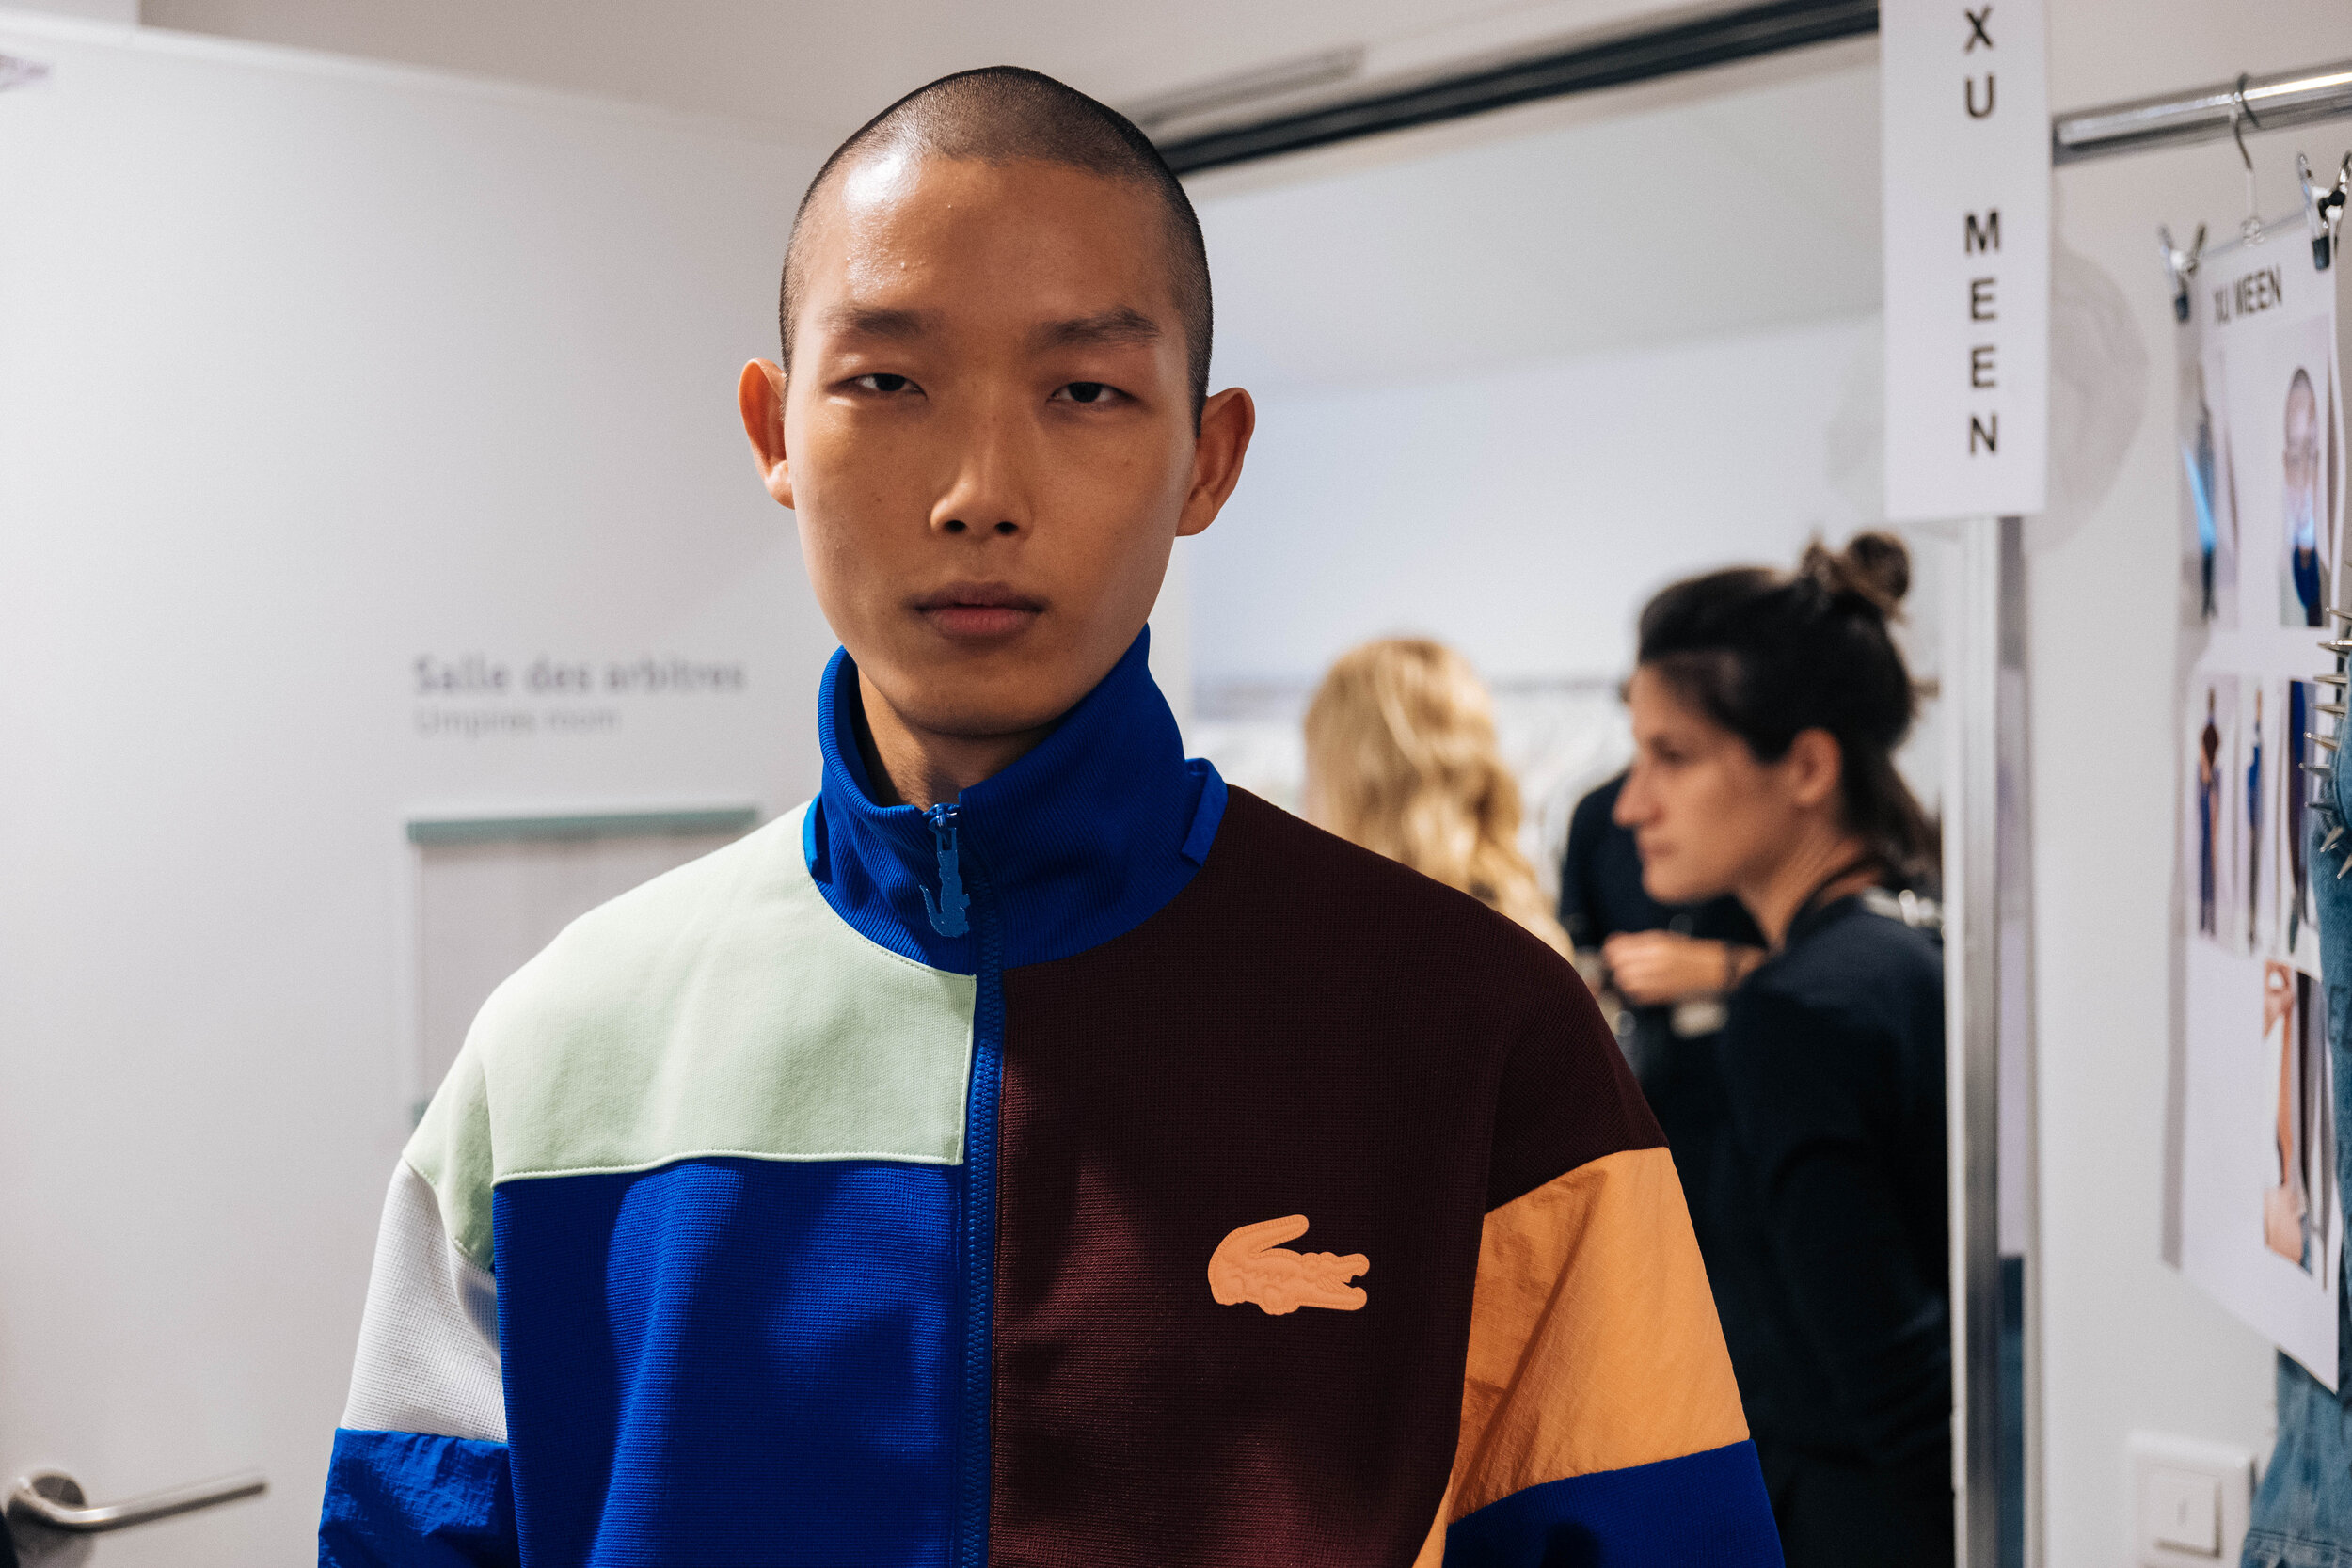 Backstage at the Lacoste SS20 show during Paris Fashion Week on Tuesday, October 1st, 2019. Photograph, Alexandre Farachi for Lacoste.